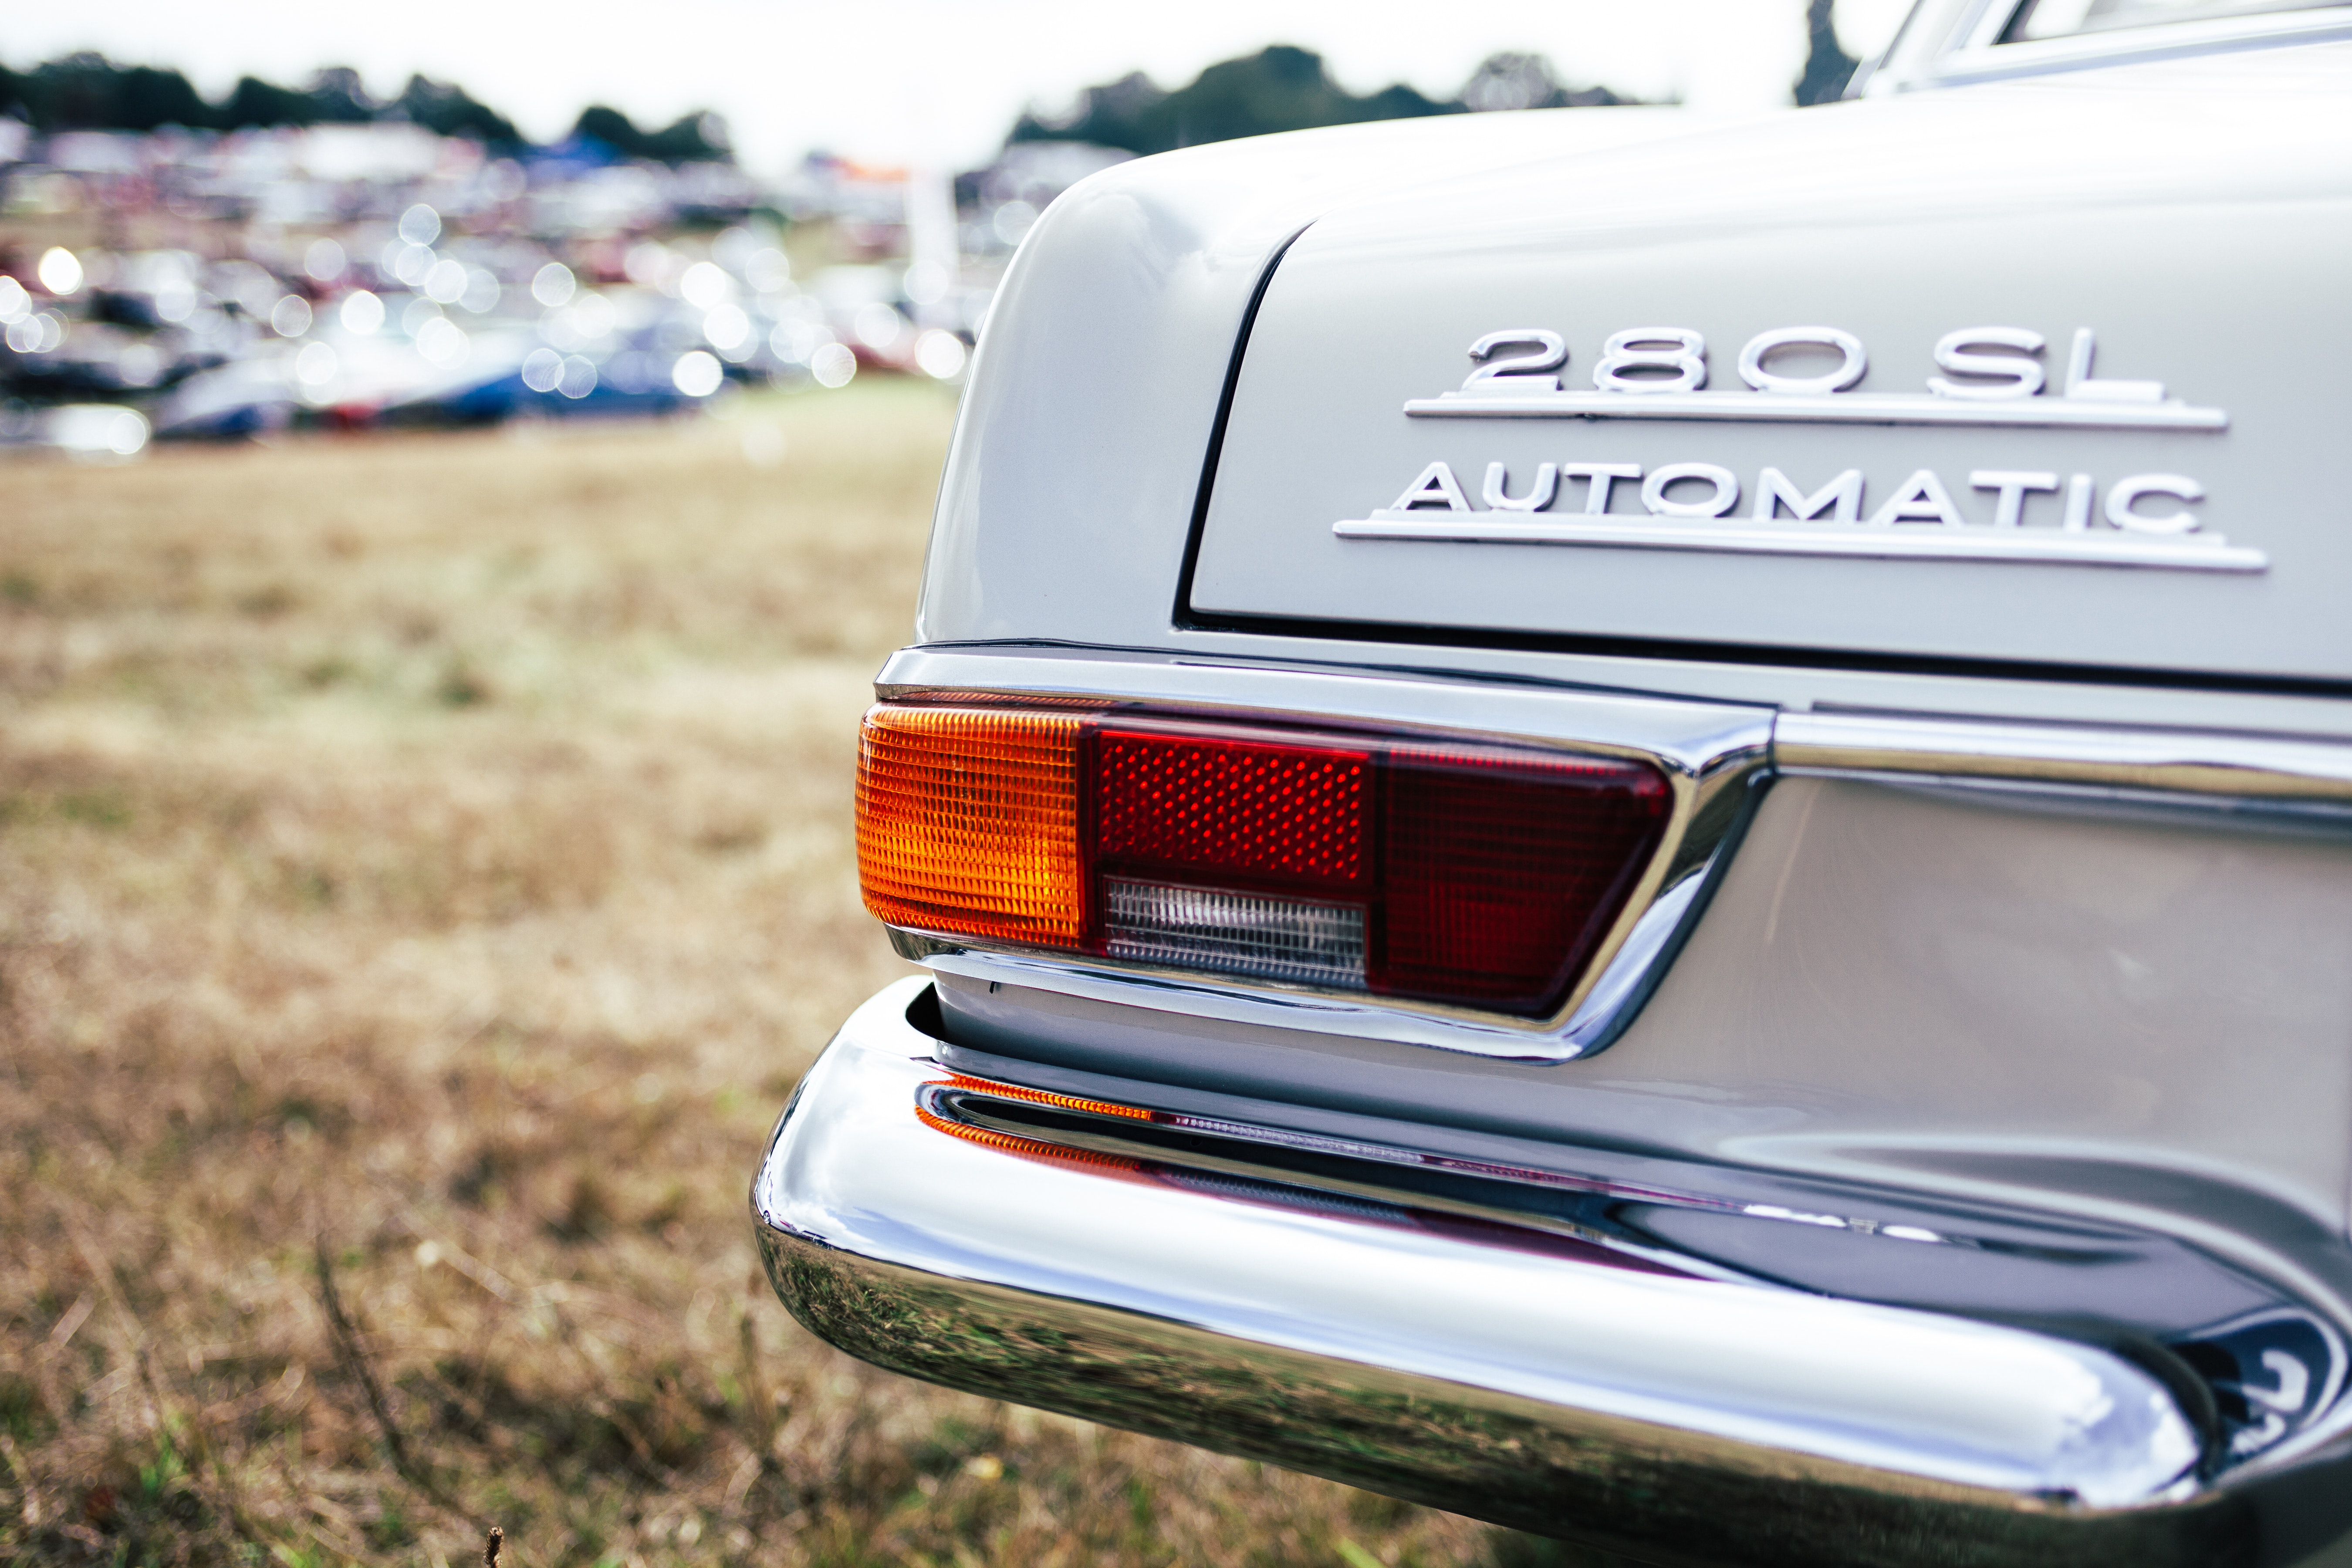 White Mercedes Benz 280 Sl Automatic, Mercedes, Vintage, Vehicle, Tail light, HQ Photo